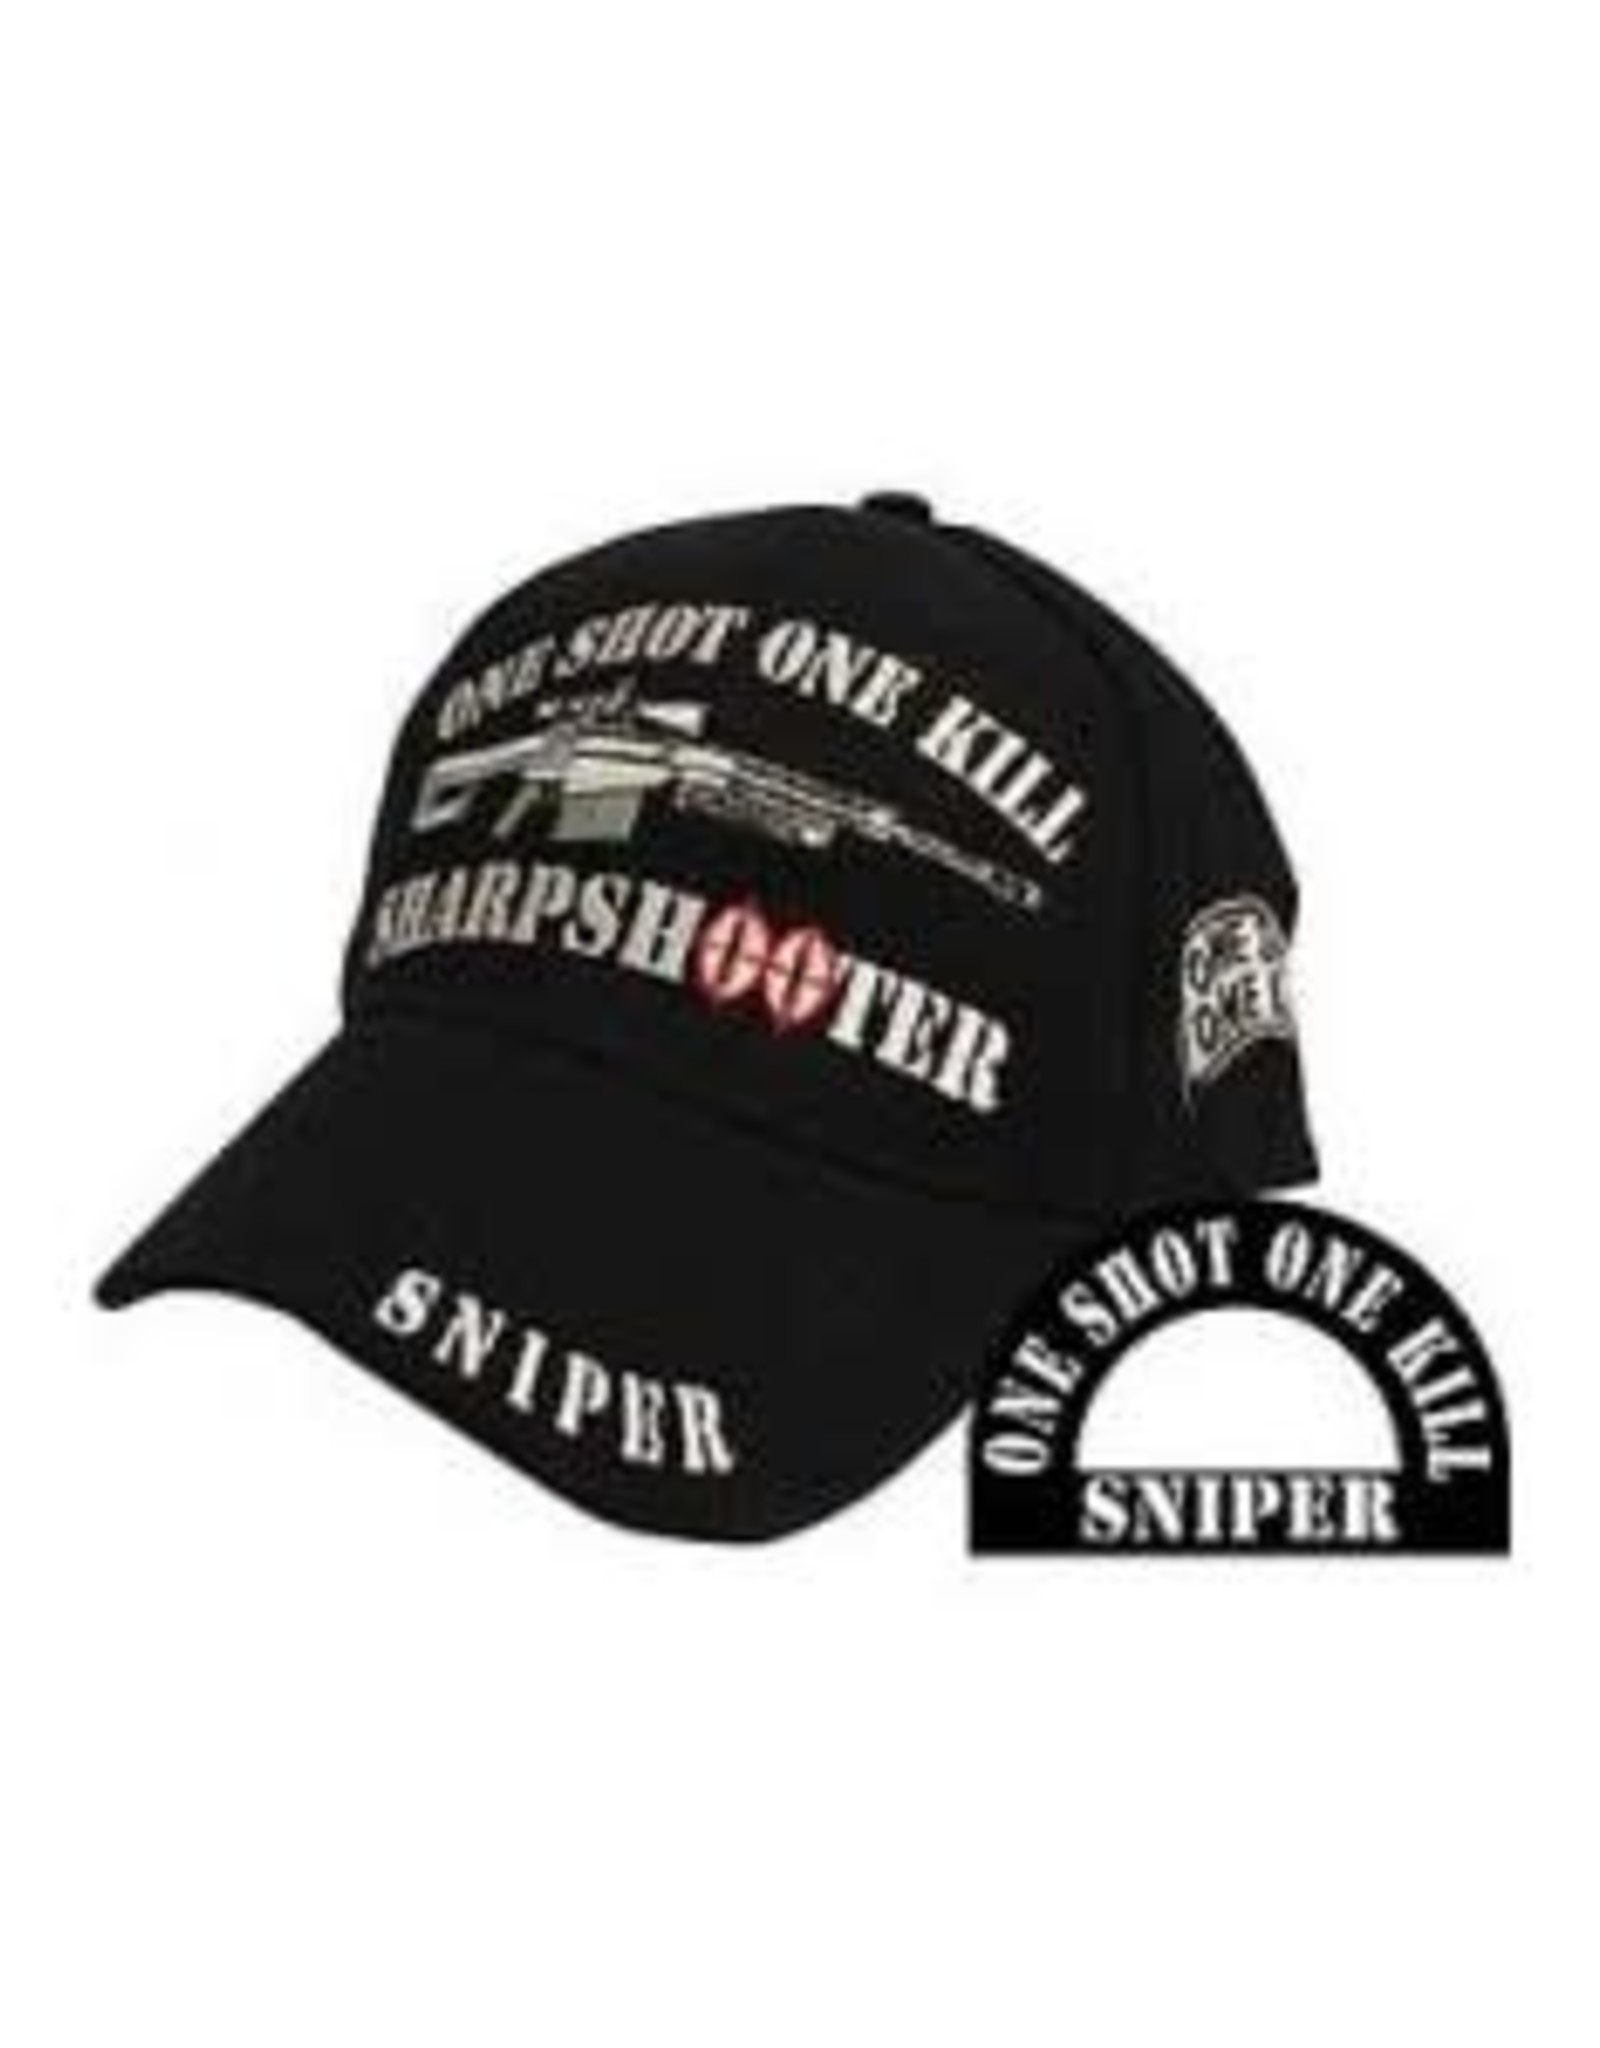 MidMil Sniper Sharpshooter Hat with Rifle and Motto Black